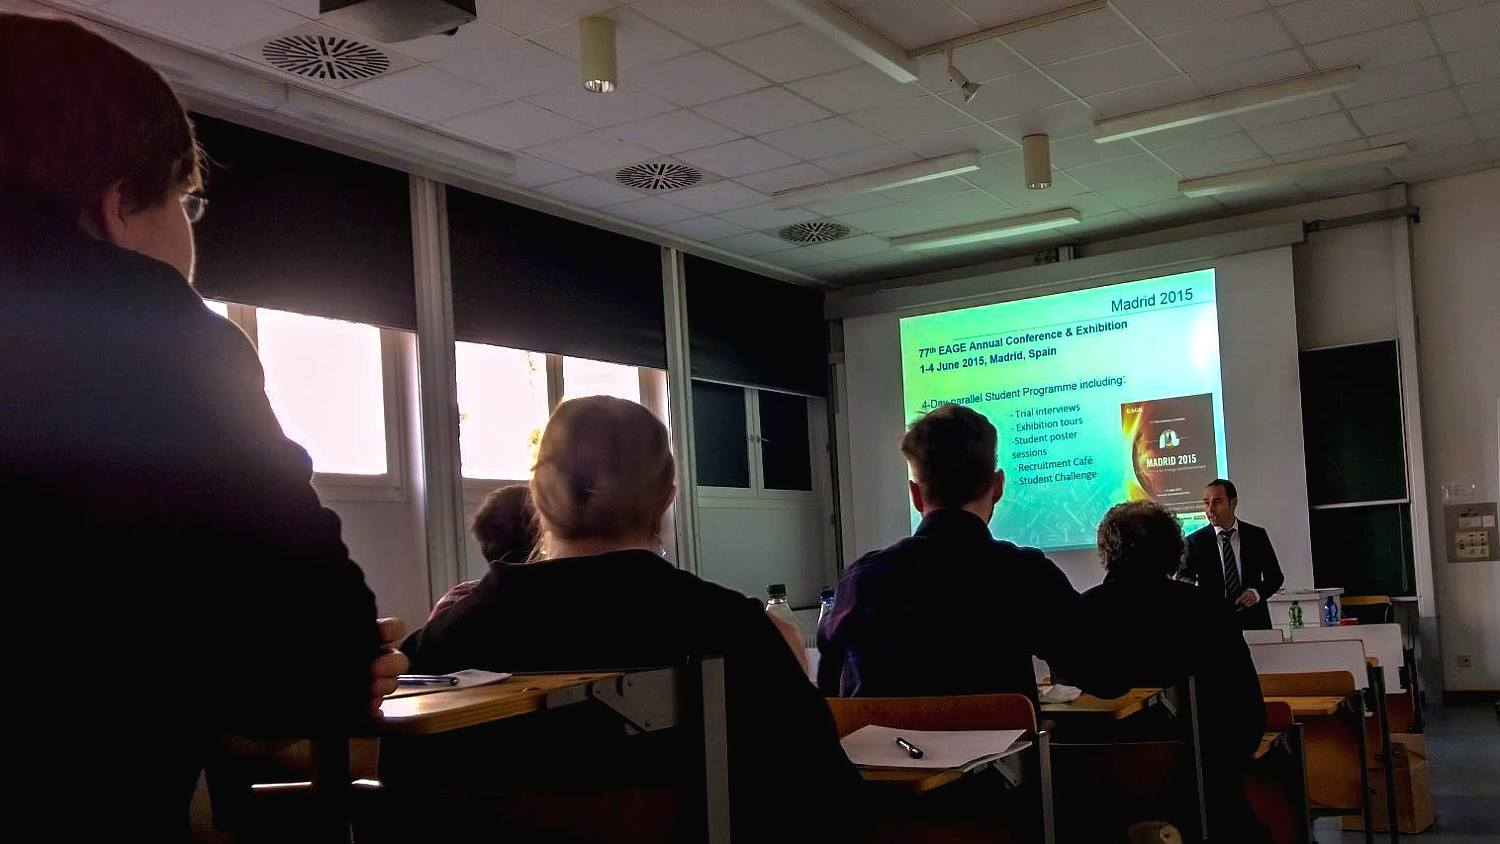 EAGE Student Lecture Europe 2014-2015